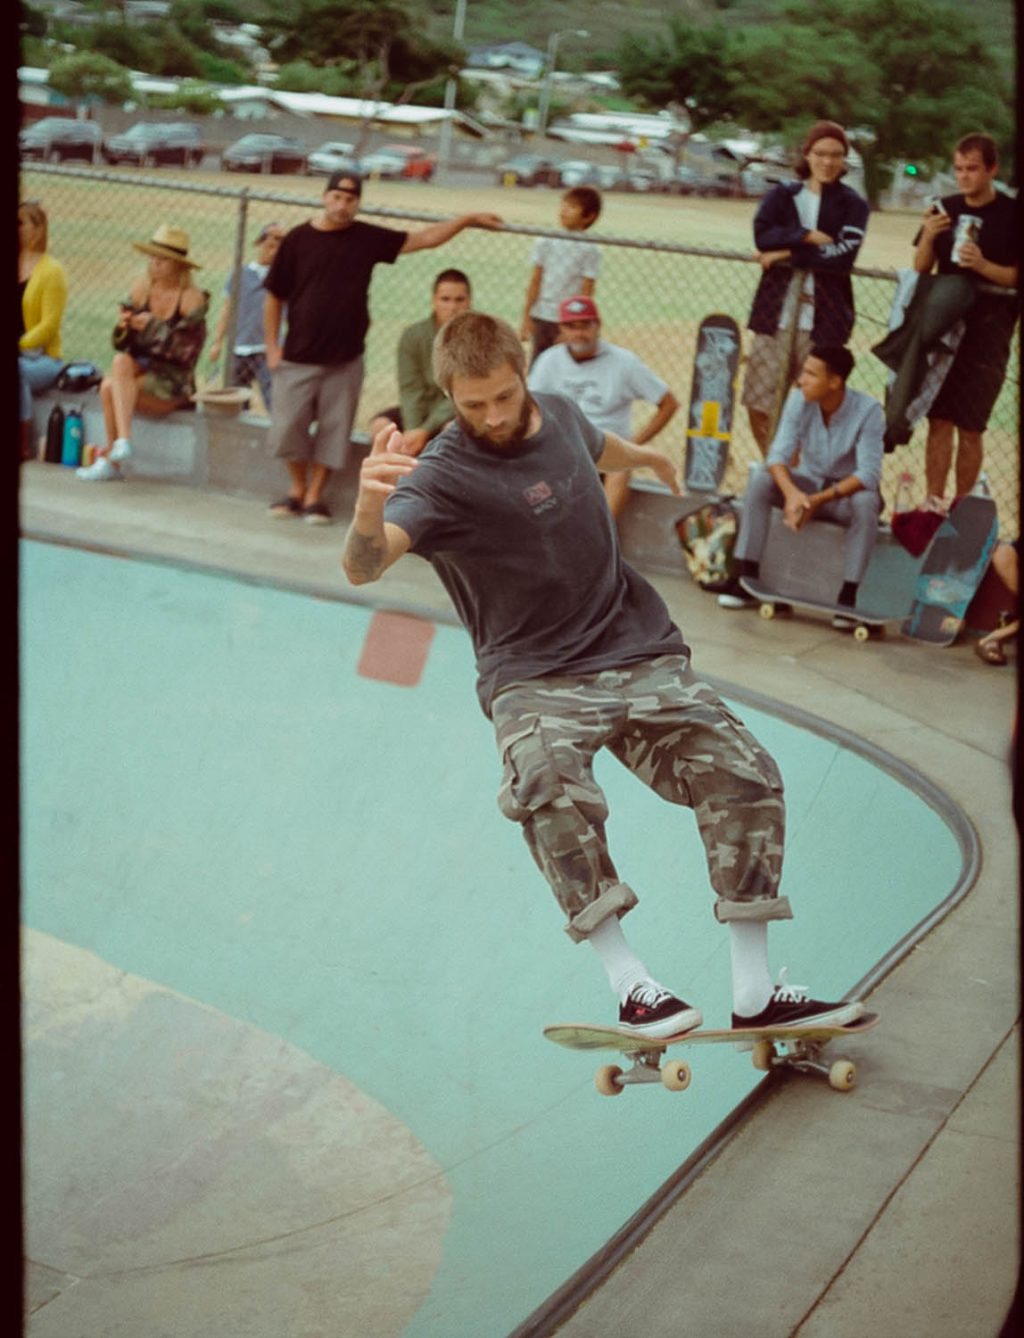 Here's another shot from the RVCA Skate event in Hawaii. 50D at box speed on my Olympus Pen FT.